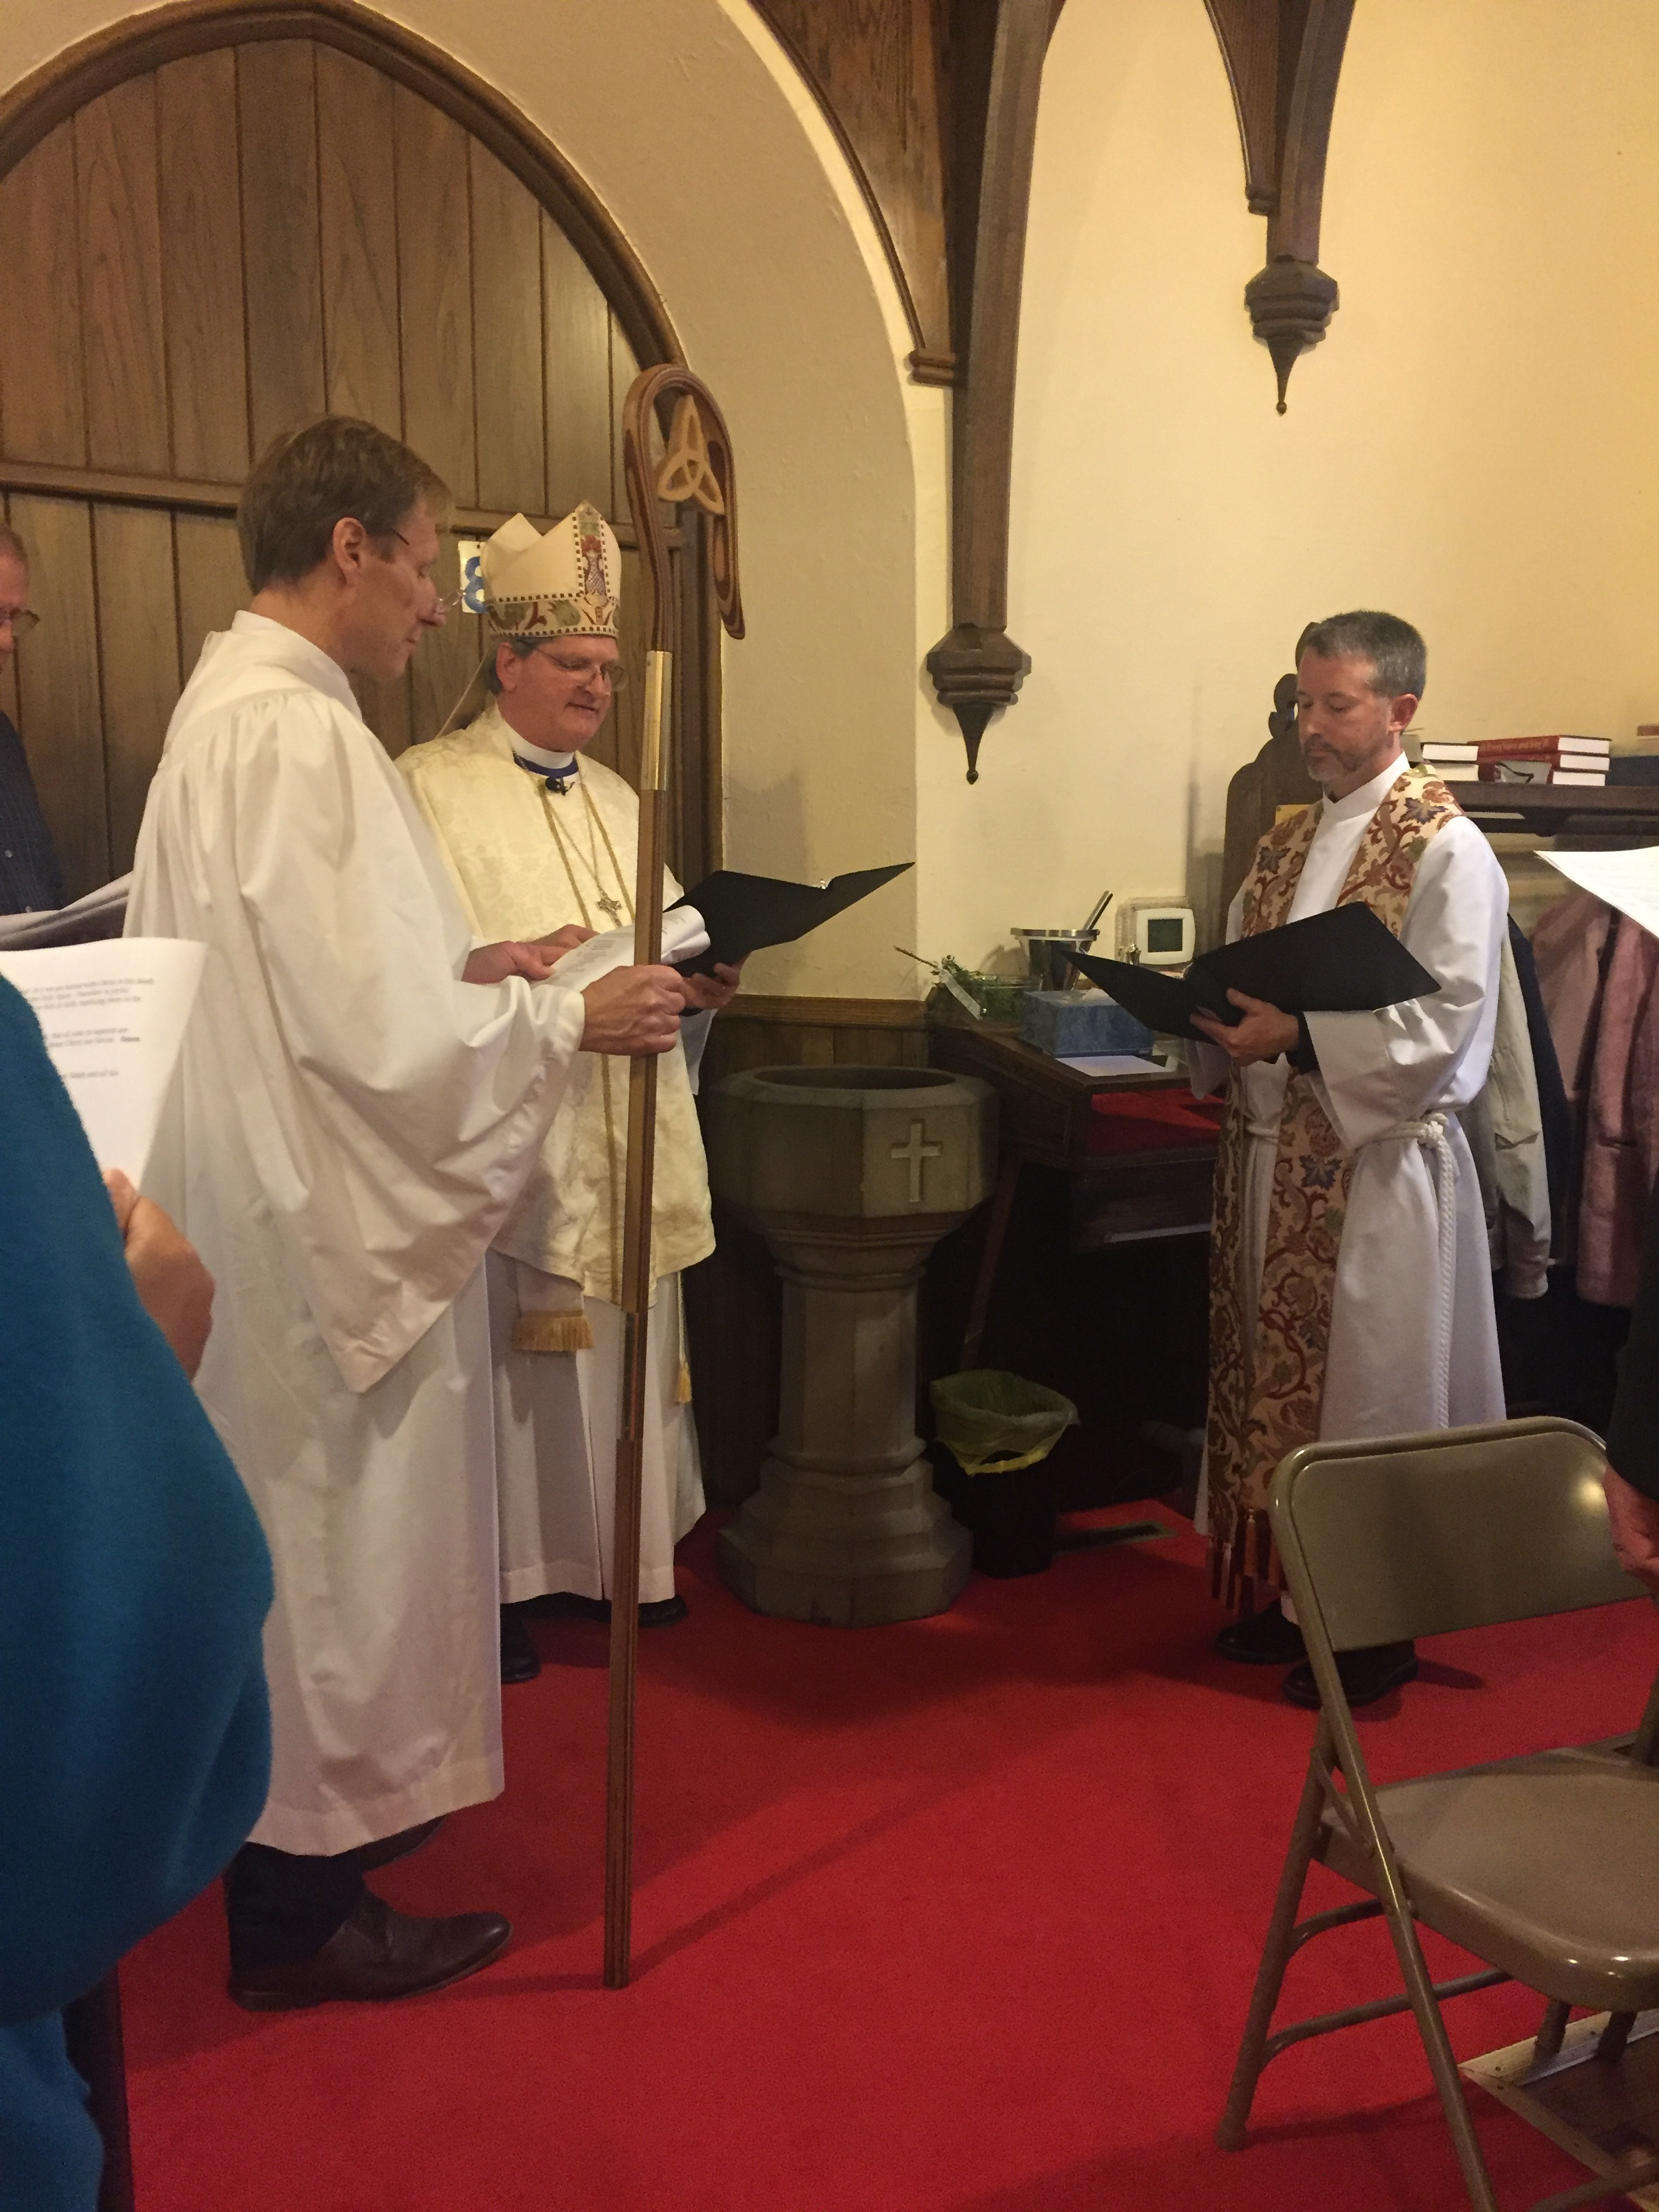 l-r: The Senior Warden, Bishop William Stokes and Todd leading the Renewal of Baptismal Vows